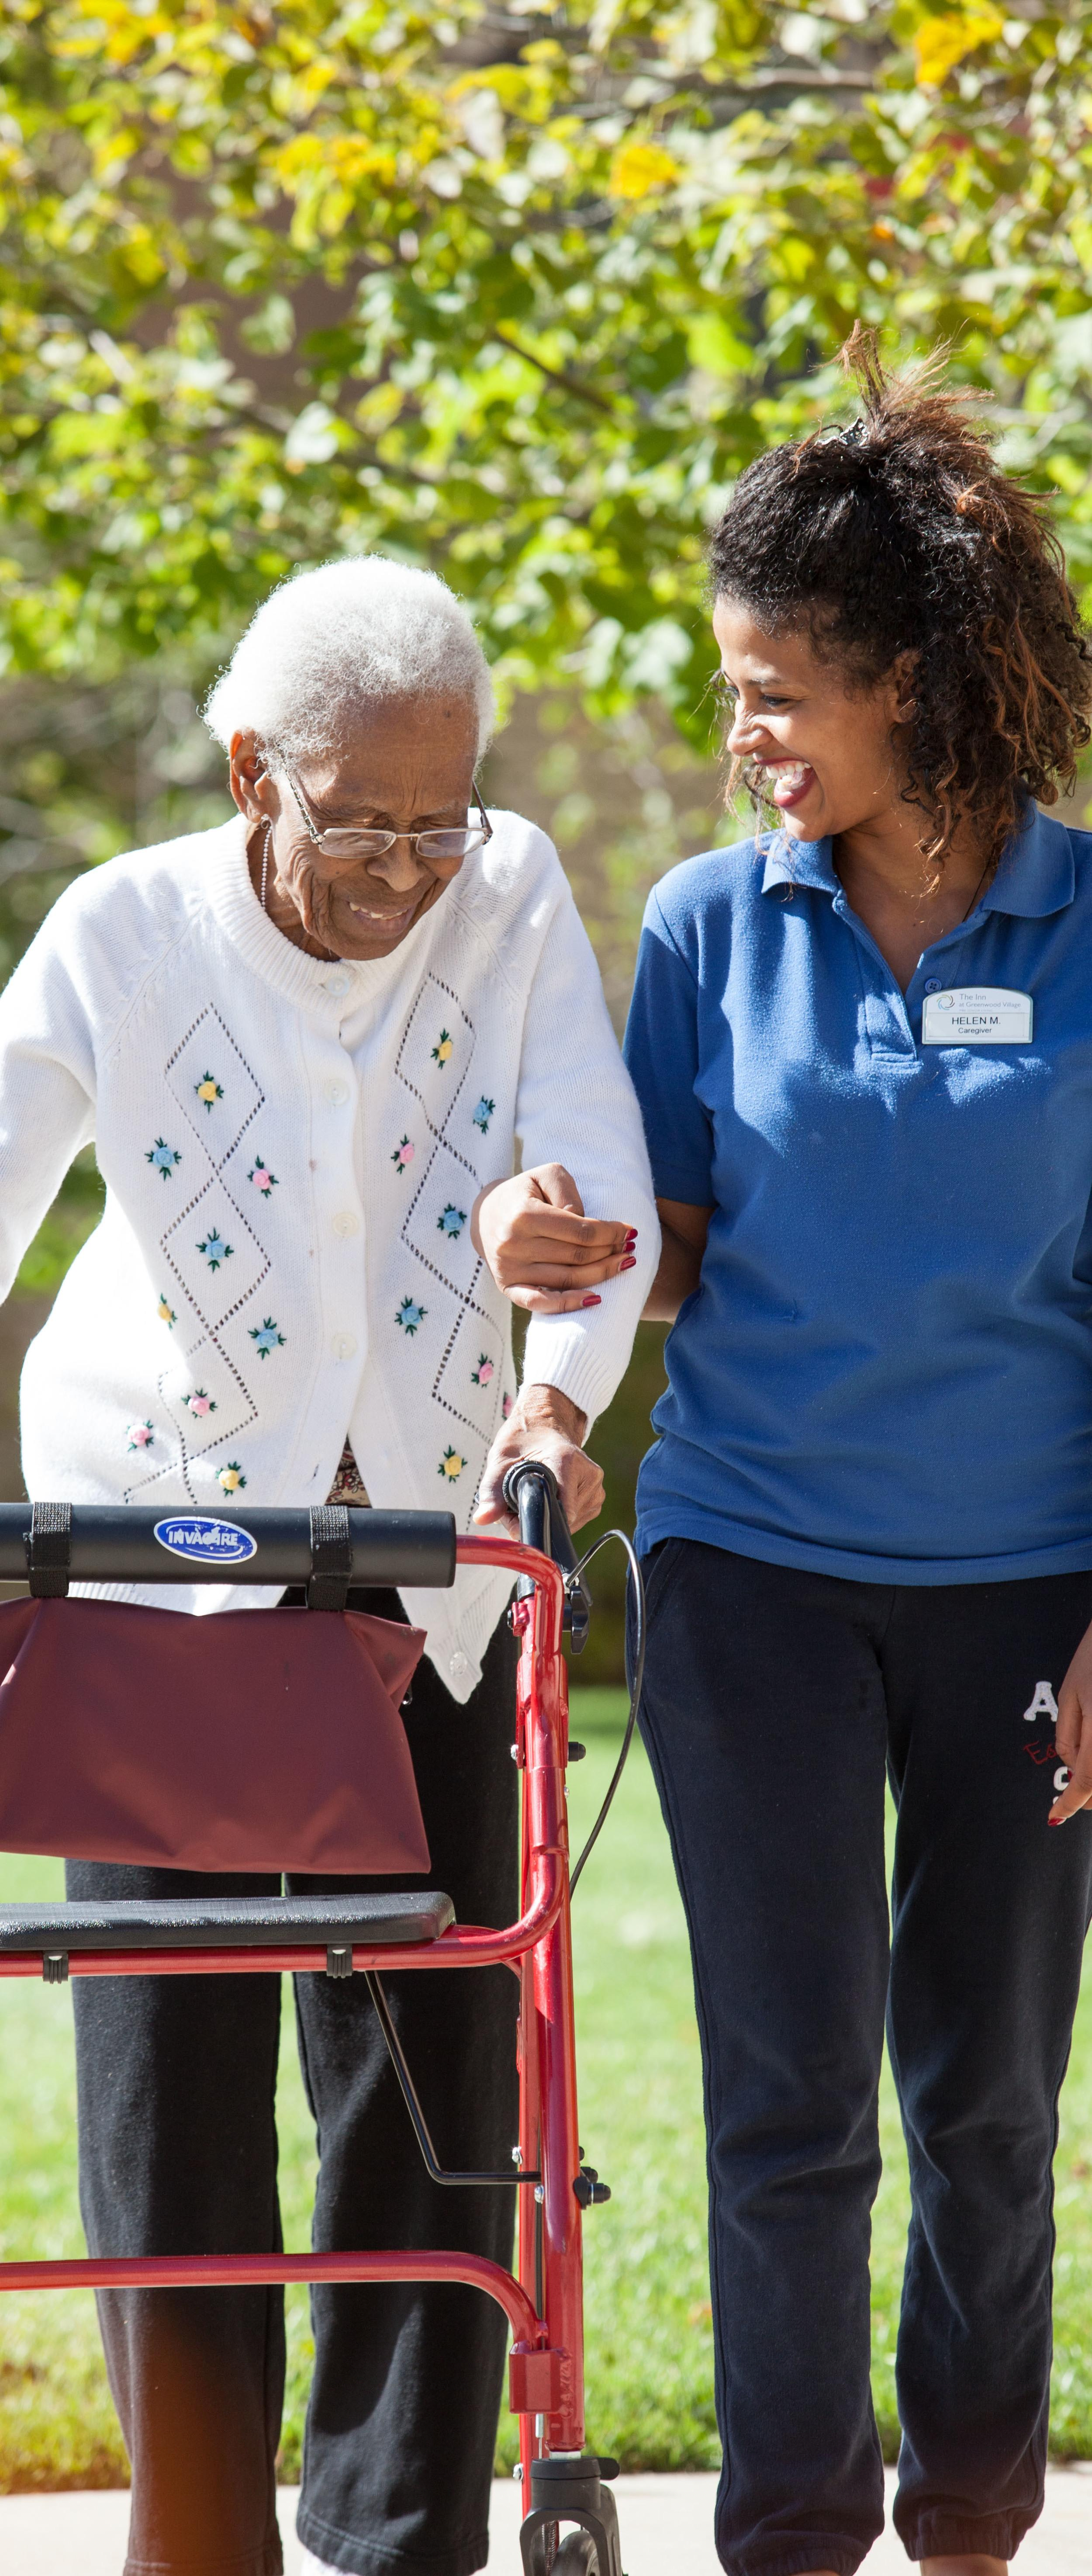 Senior living in Mercer Island offer assisted living for you or your loved ones